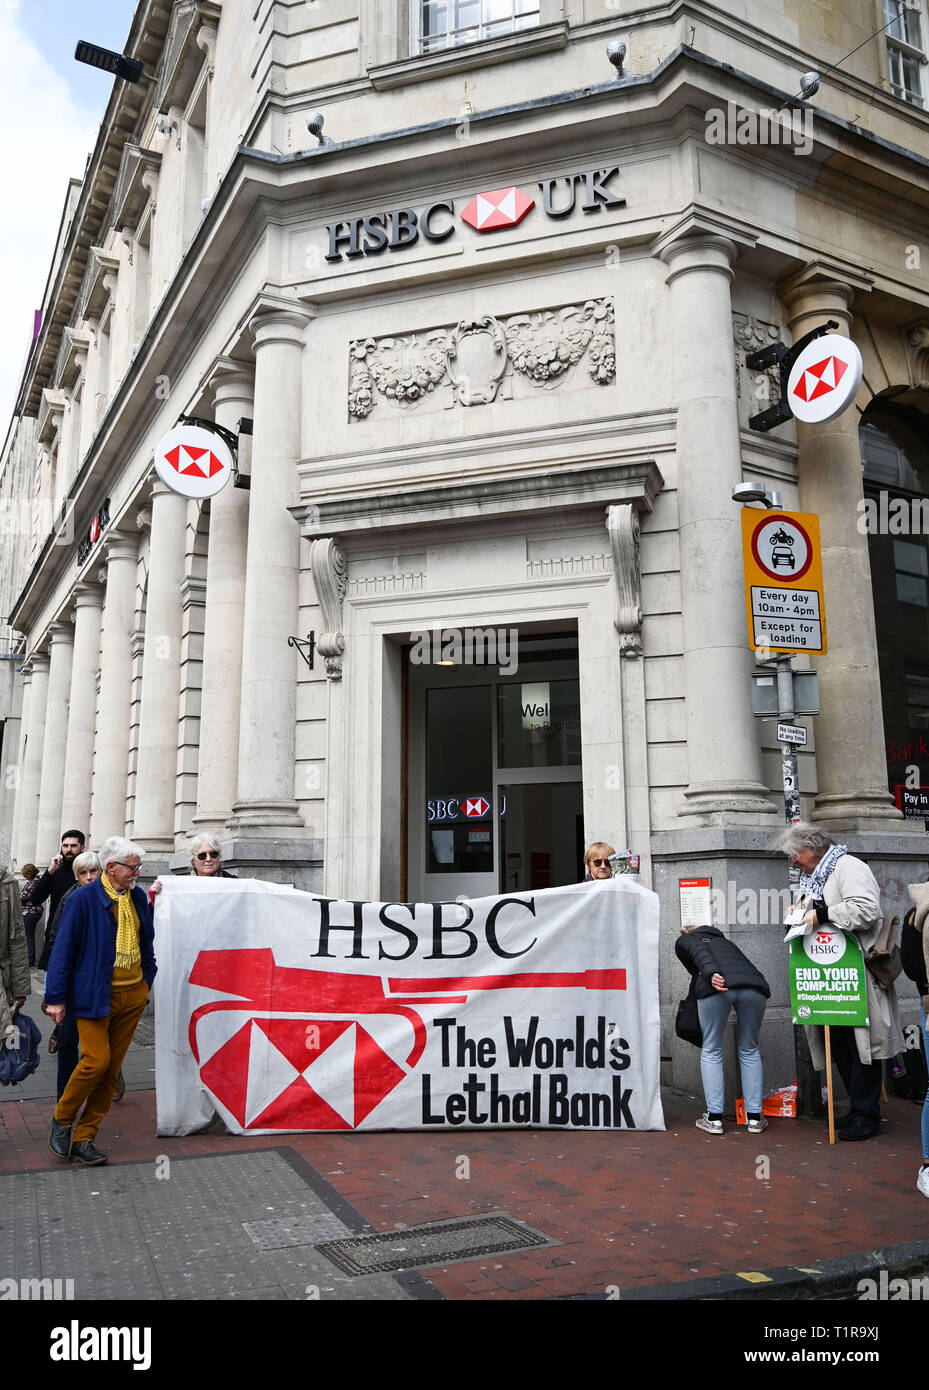 Brighton, UK. 28th Mar, 2019. The Brighton and Hove Palestine Solidarity Campaign outside the HSBC bank in North Street Brighton today . The Stop Arming Israel campaign is hoping to put pressure on the bank to cut ties with companies allegedly supplying weapons to Israel Credit: Simon Dack/Alamy Live News Stock Photo